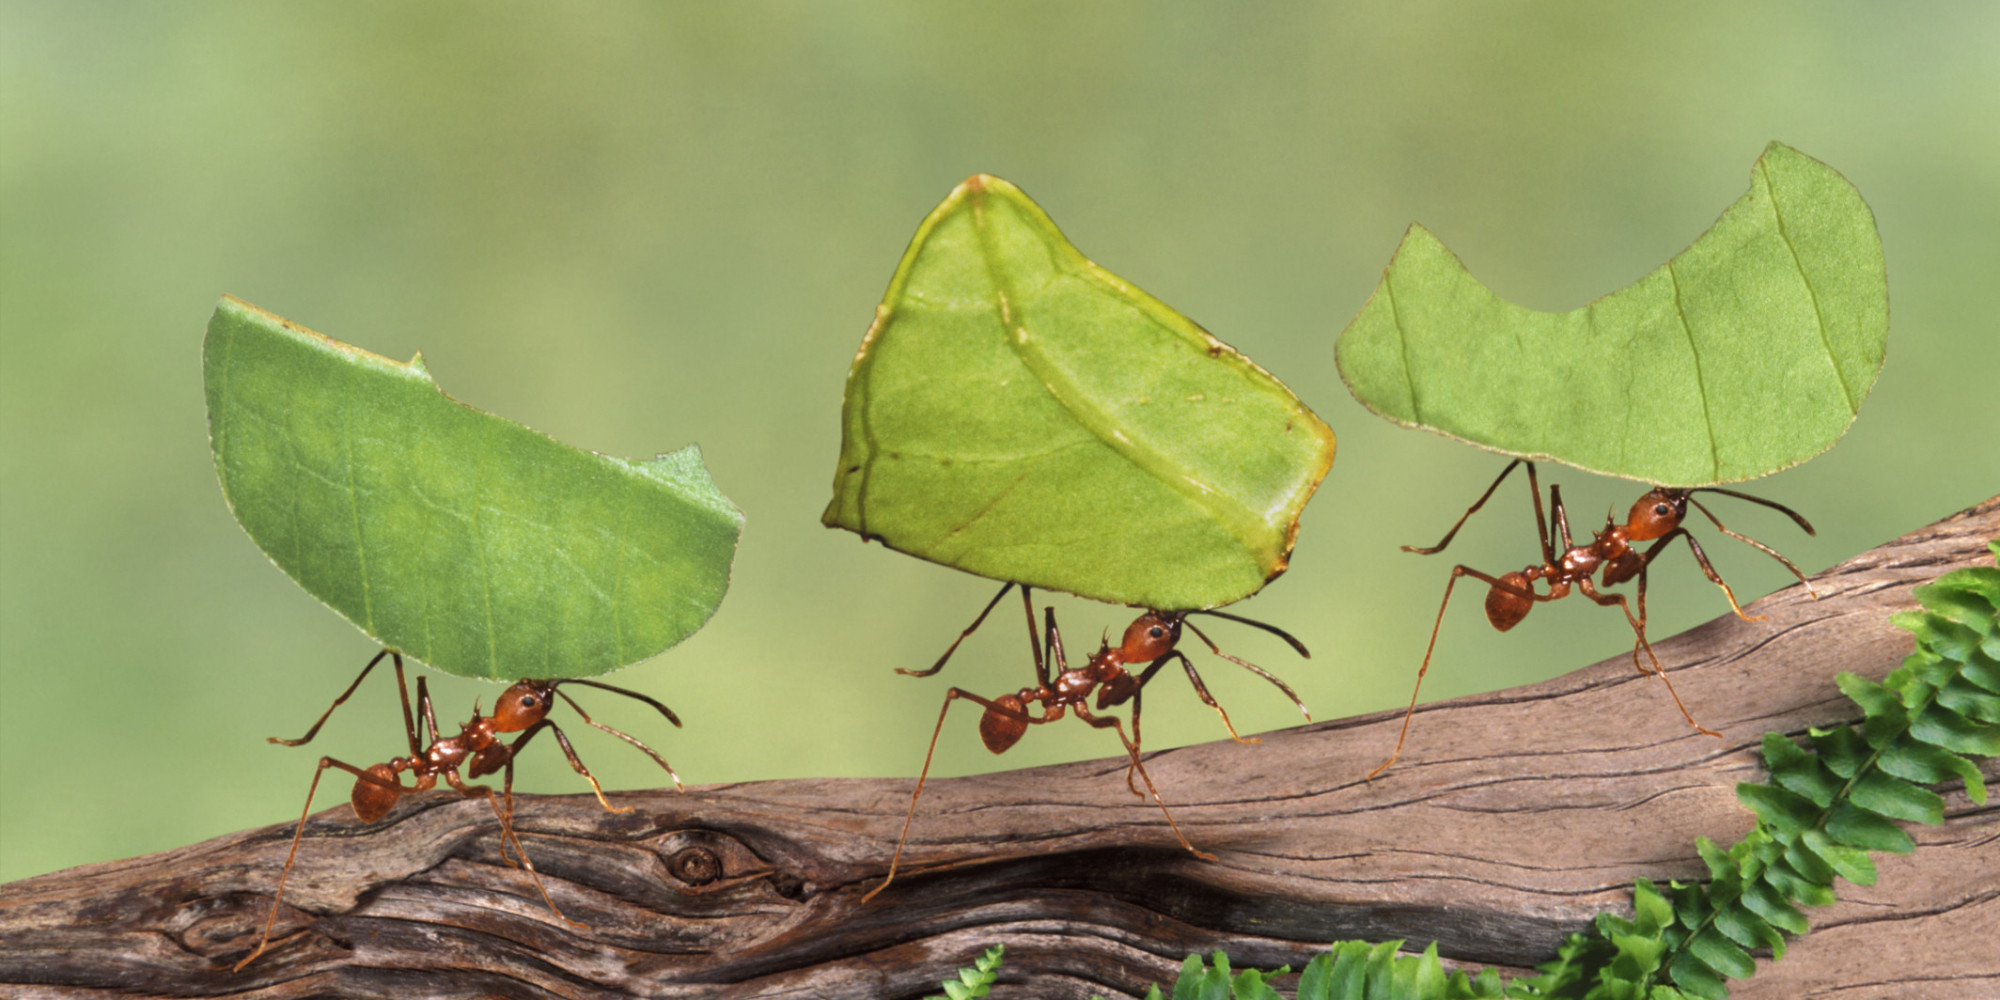 What Can We Learn From Ants? | Better Life Coaching Blog